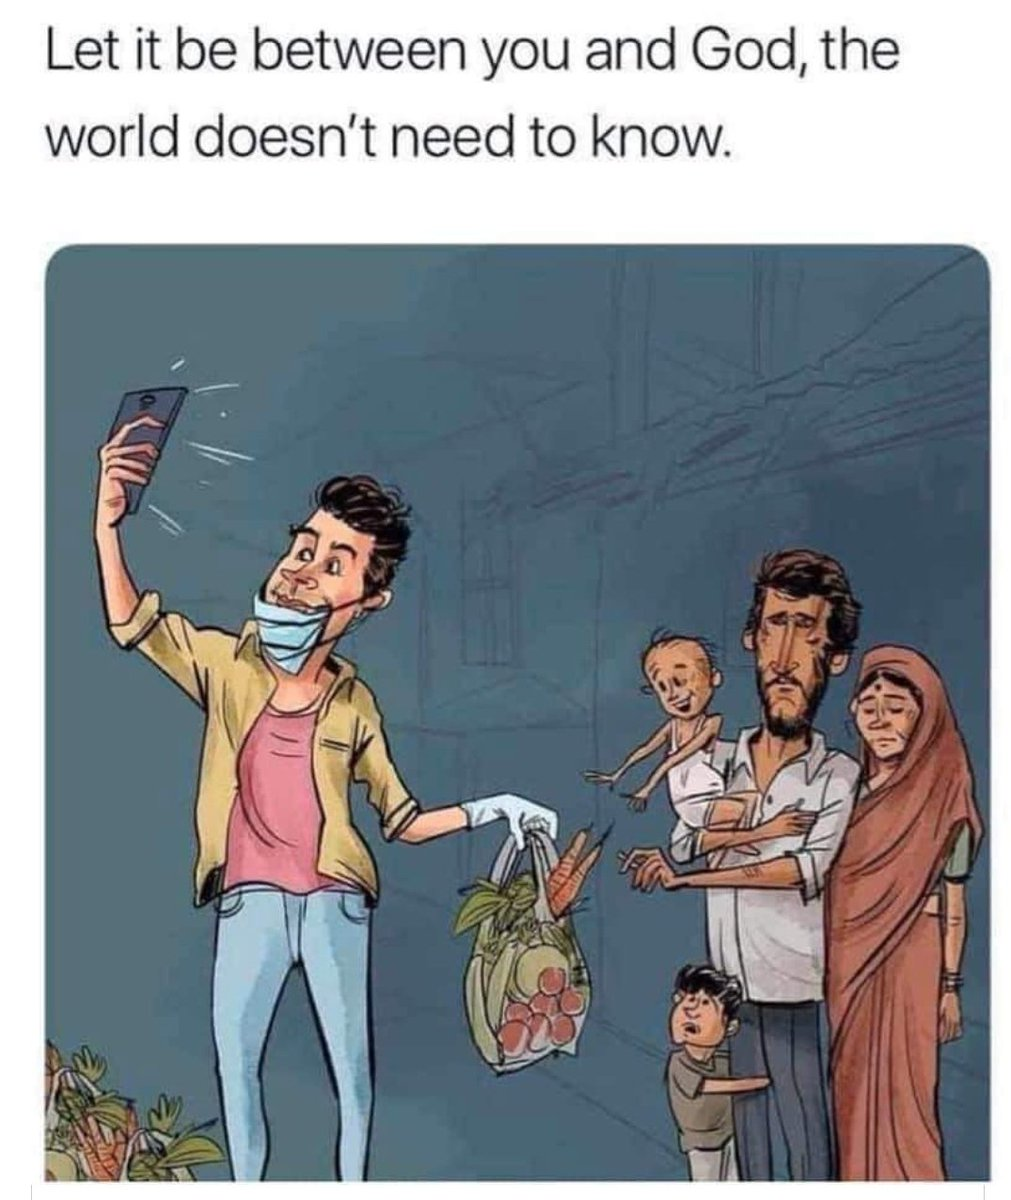 When doing charity or helping someone in need, keep your phones away. Let it be between you and God, the world doesn't need to know. Jumma Mubarak 💕💕 #inspiration #quotes #quoteoftheday #InspirationalQuotes https://t.co/O95TTdC0v9